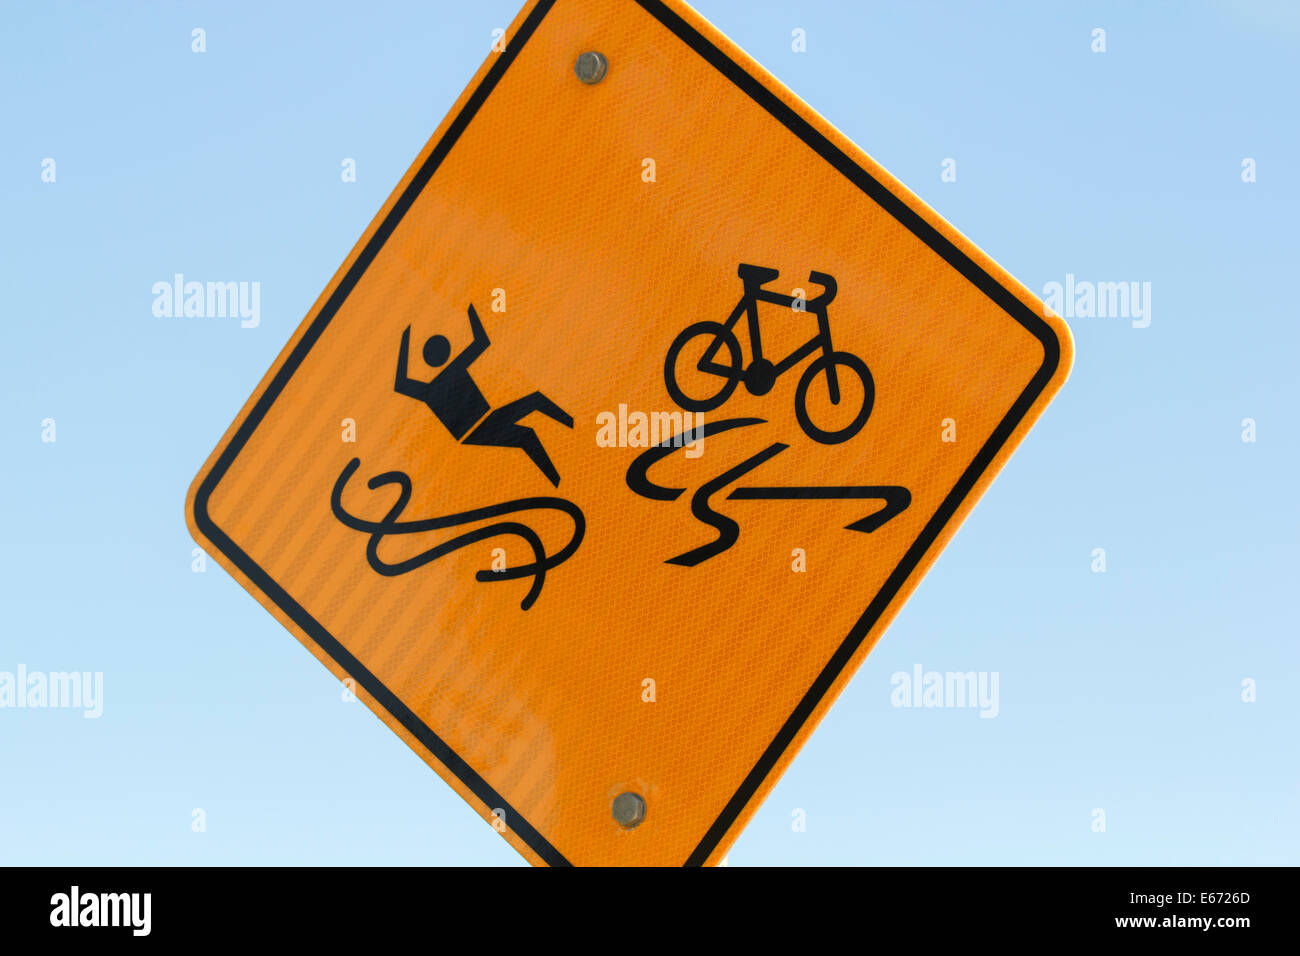 Slippery when wet sign illustrating human and bike on slippery road surface Stock Photo